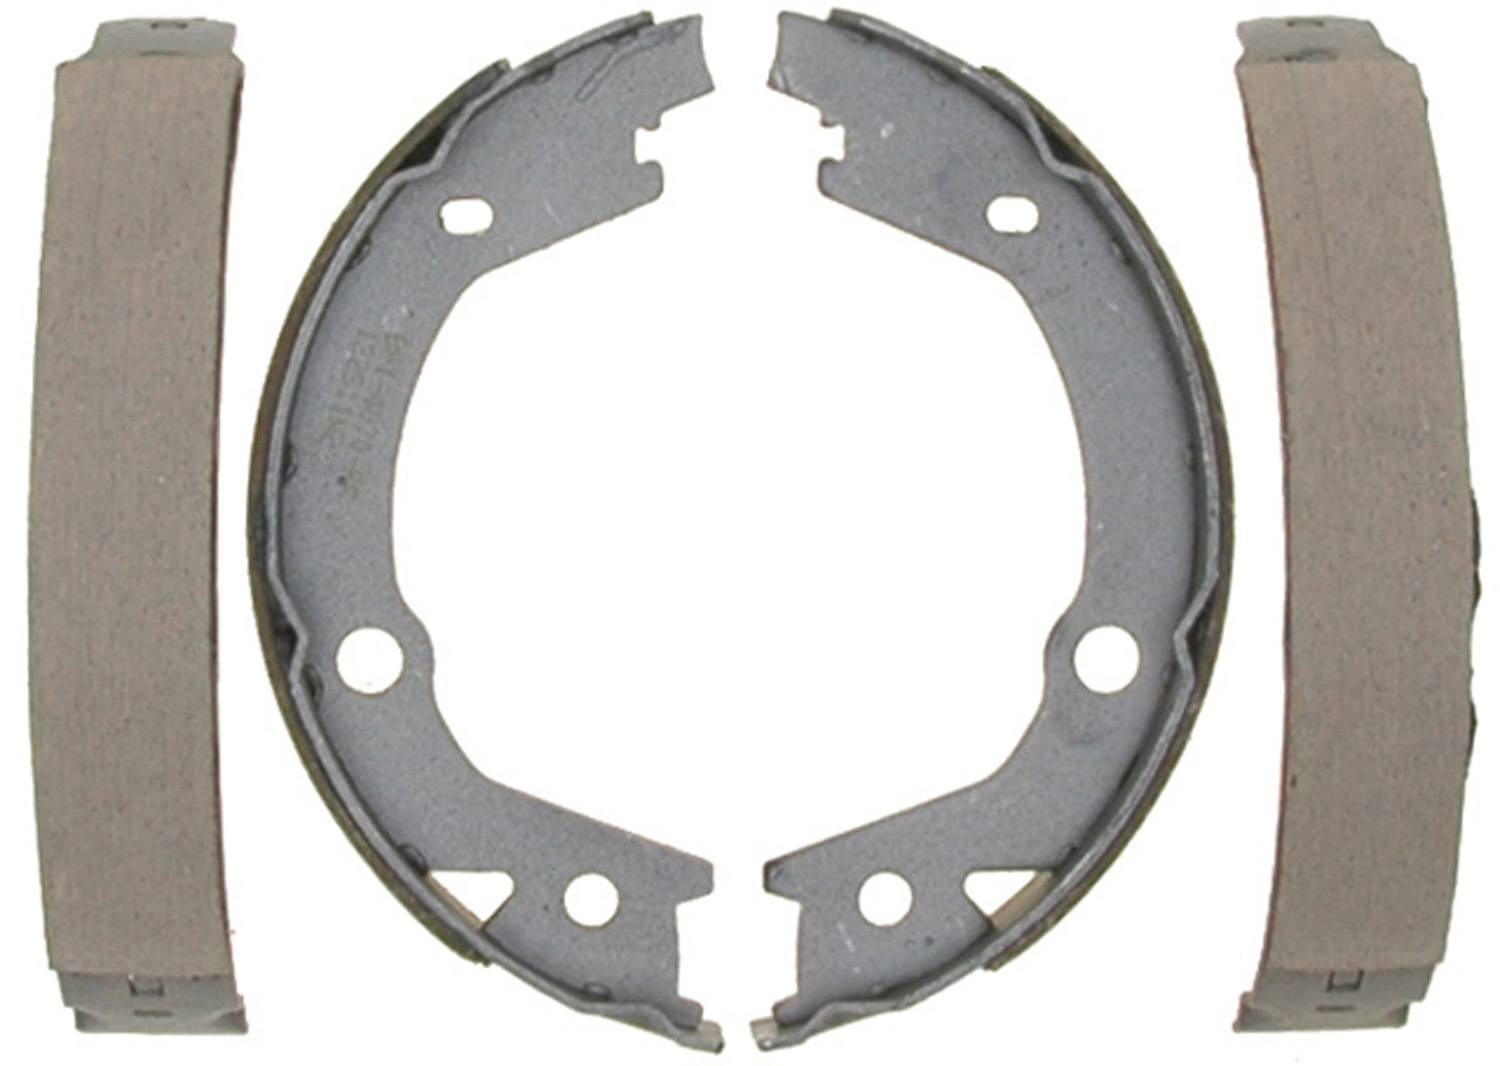 ACDELCO PROFESSIONAL BRAKES - Bonded Parking Brake Shoe (Rear) - ADU 17845B